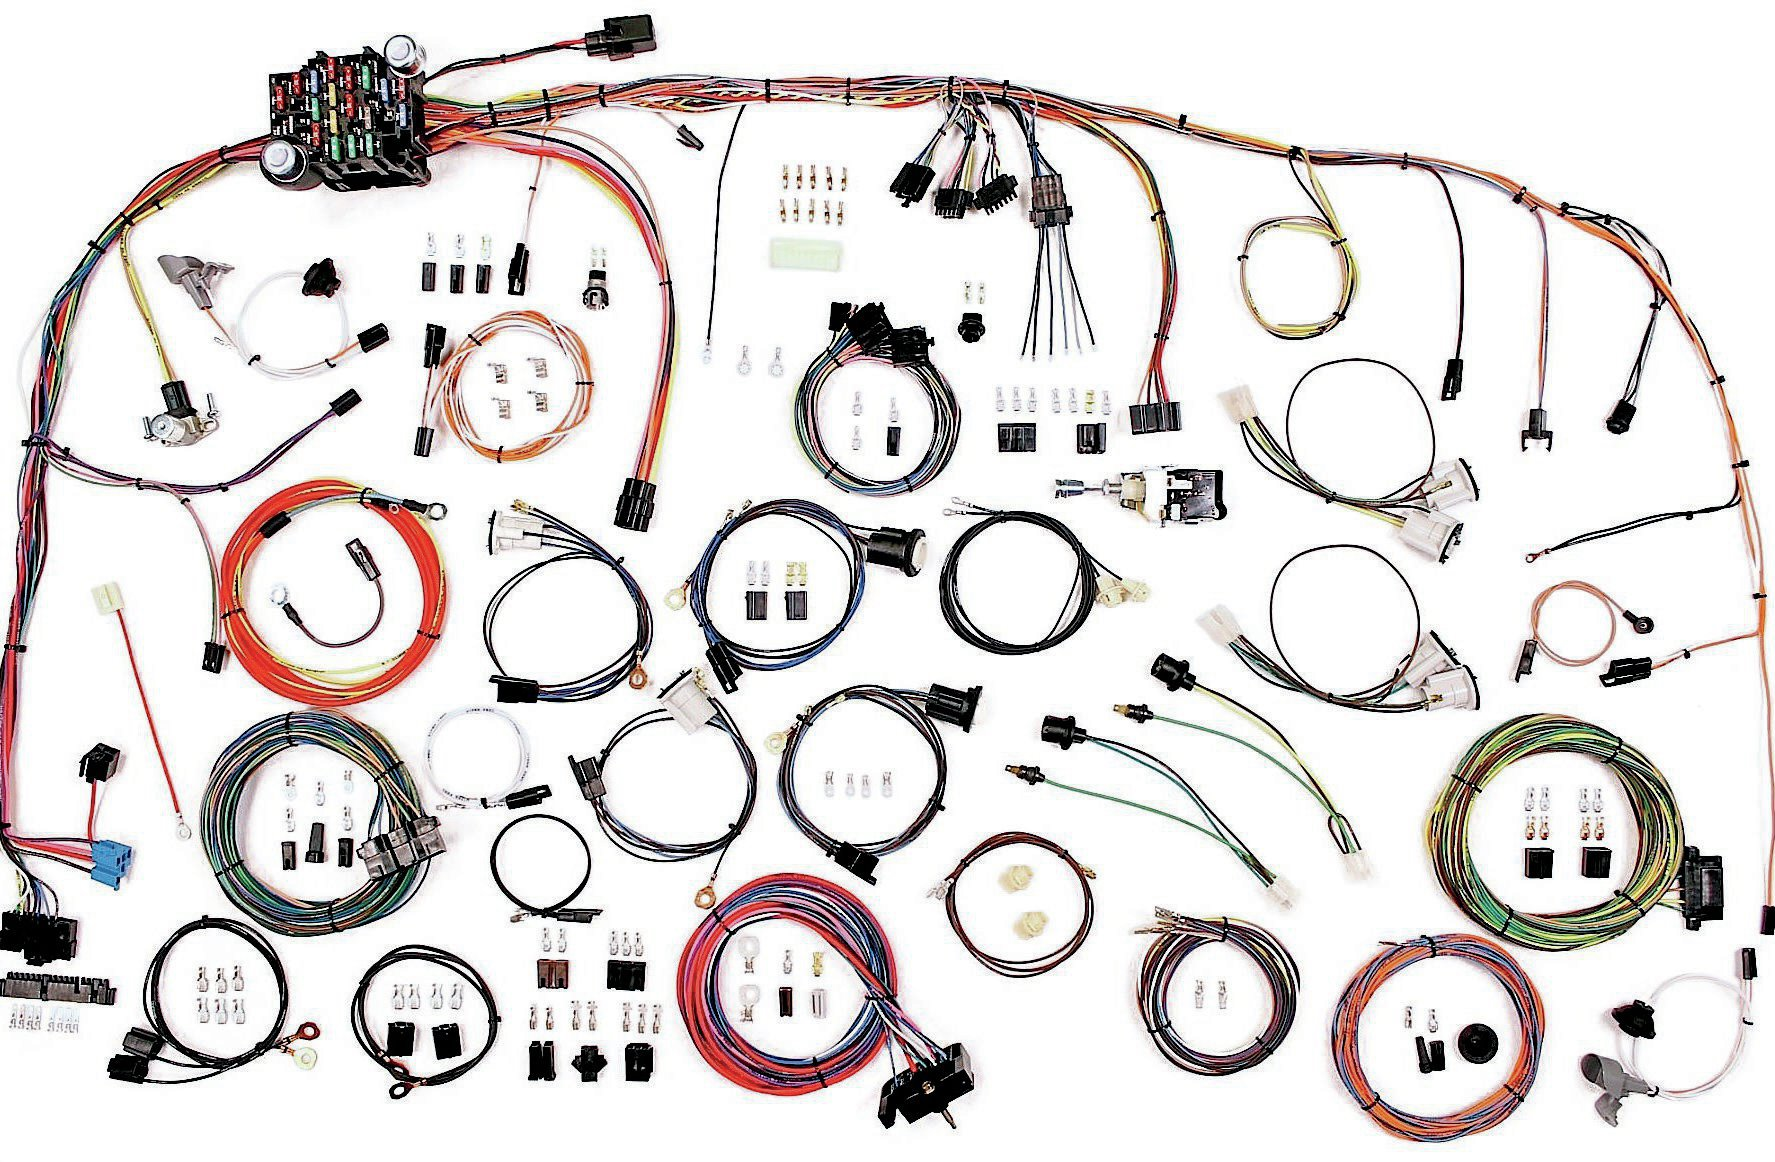 Muscle Car Wiring Harness Automotive Wiring Harness Manufacturers